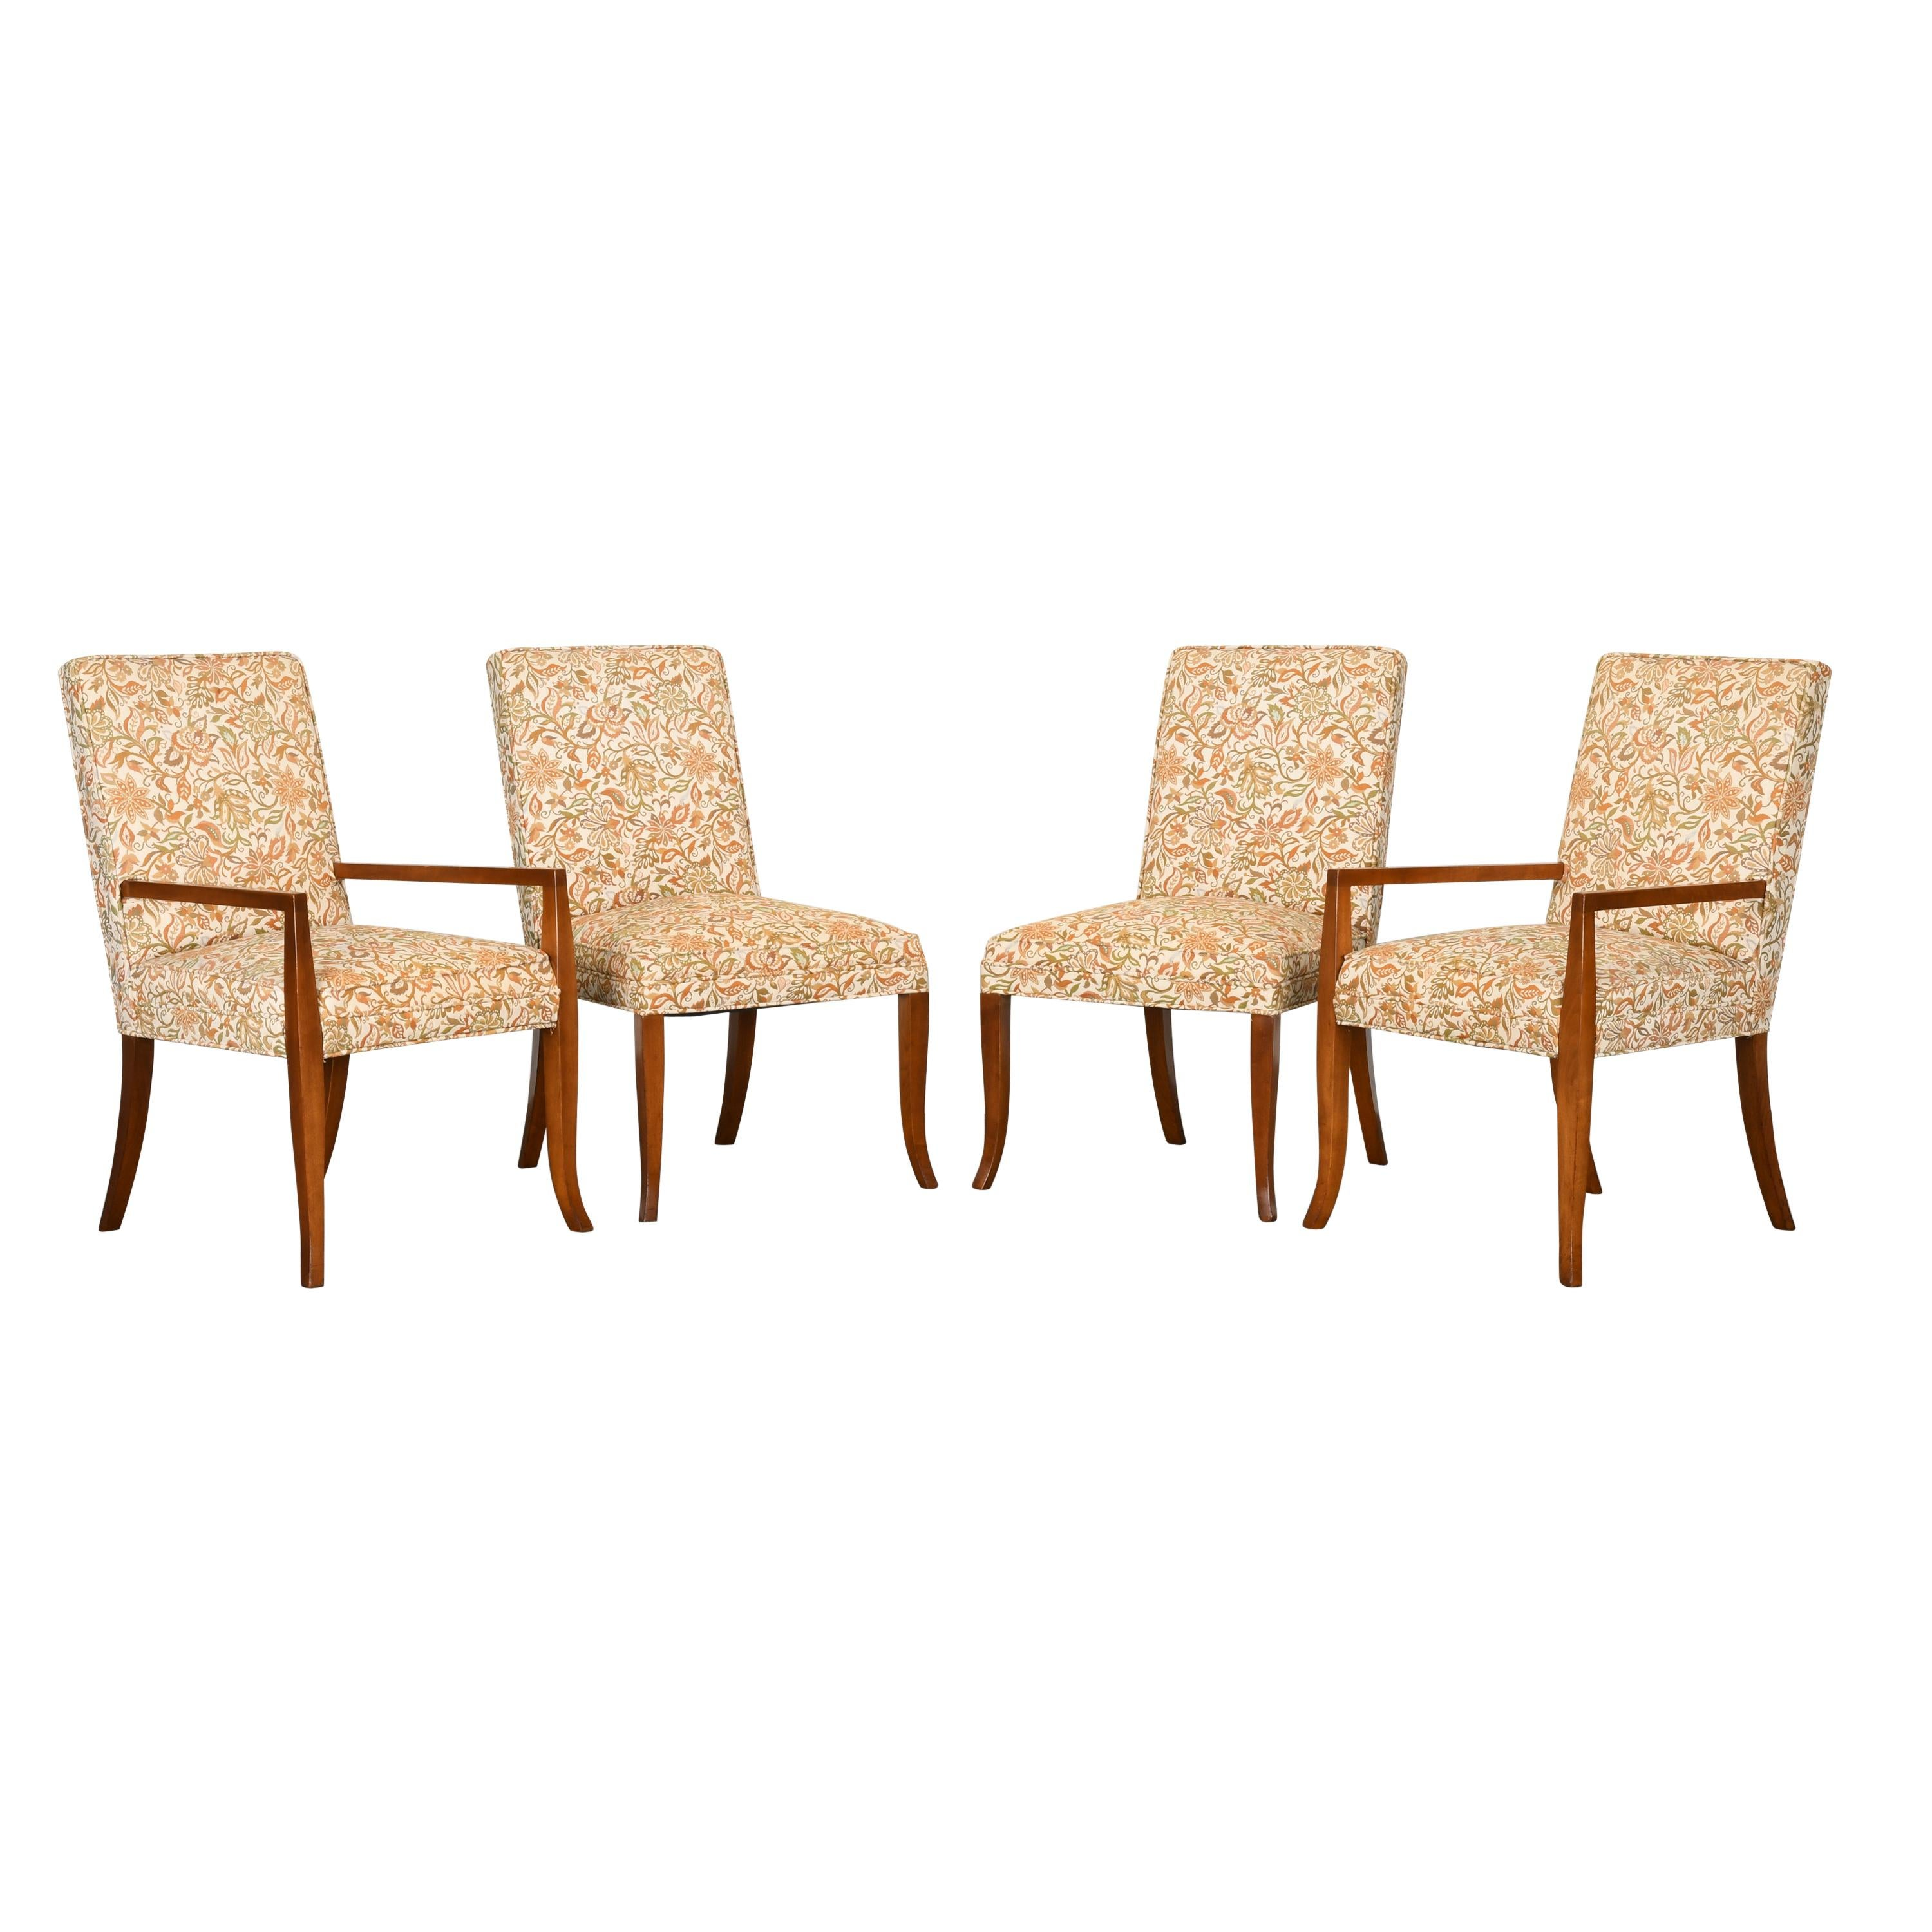 Four Dining Chairs by T.H. Robsjohn-Gibbings for Widdicomb, 1940s